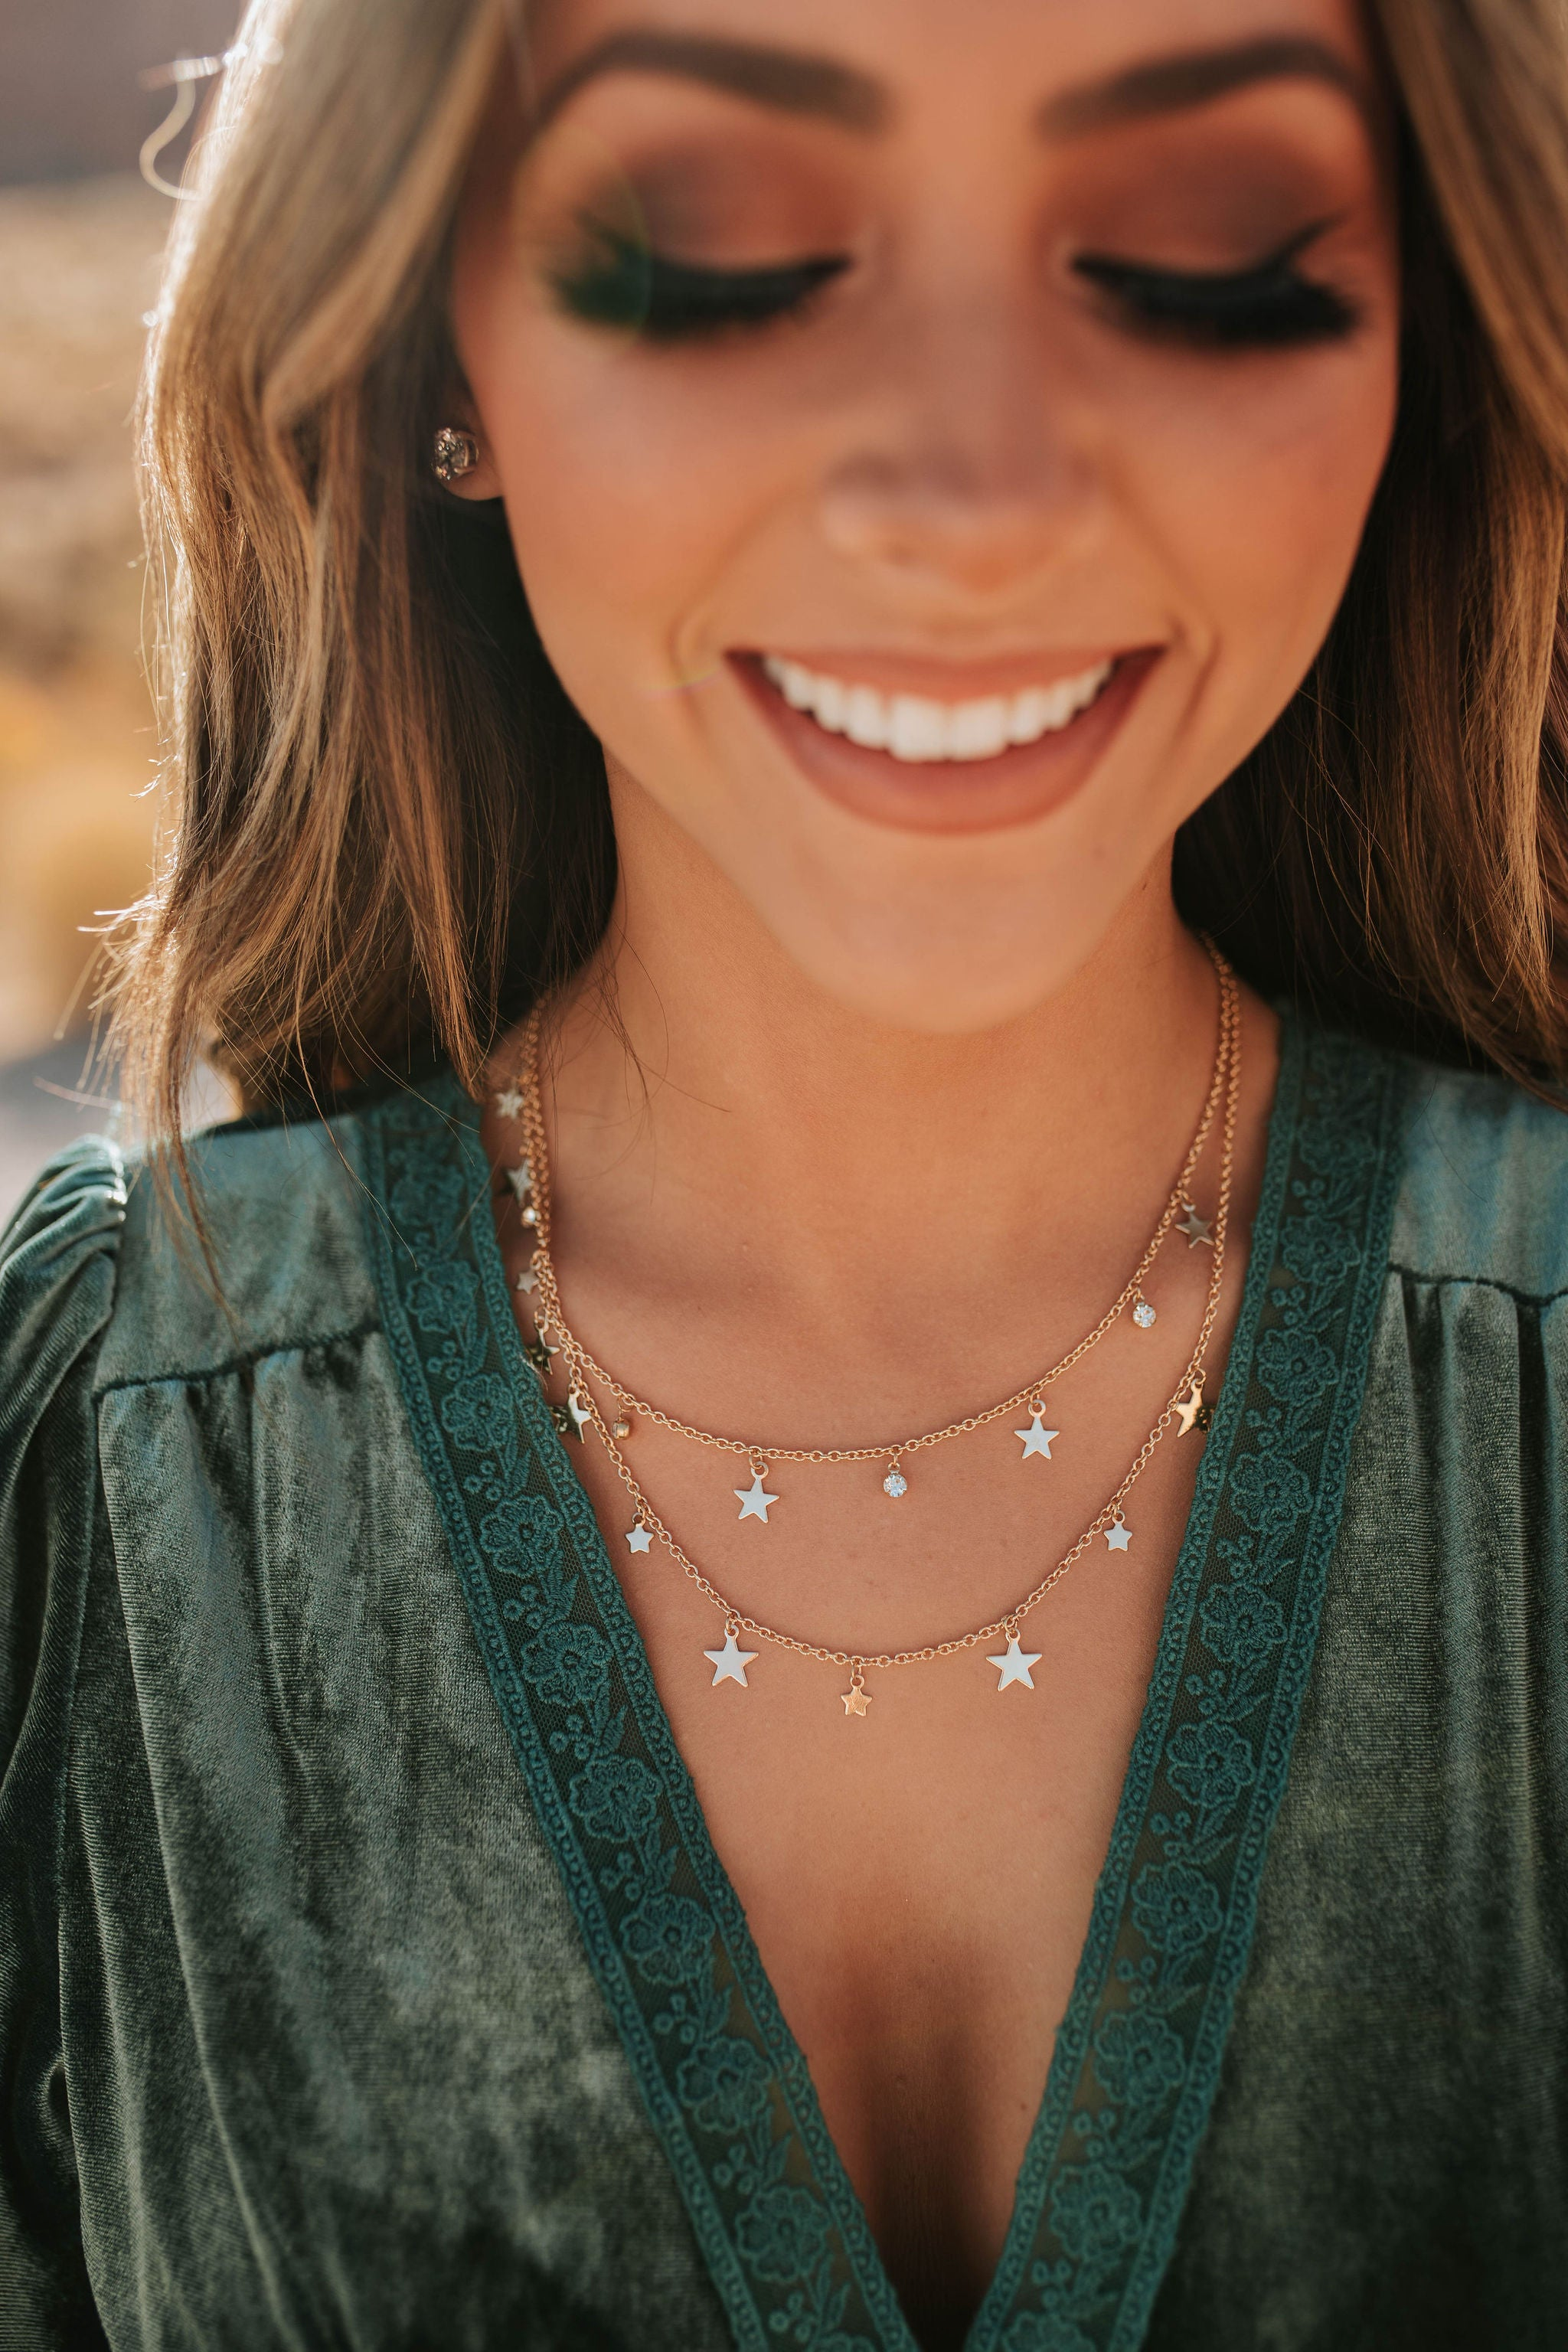 THE STAR AND RHINESTONE CHARMED LAYERED NECKLACE